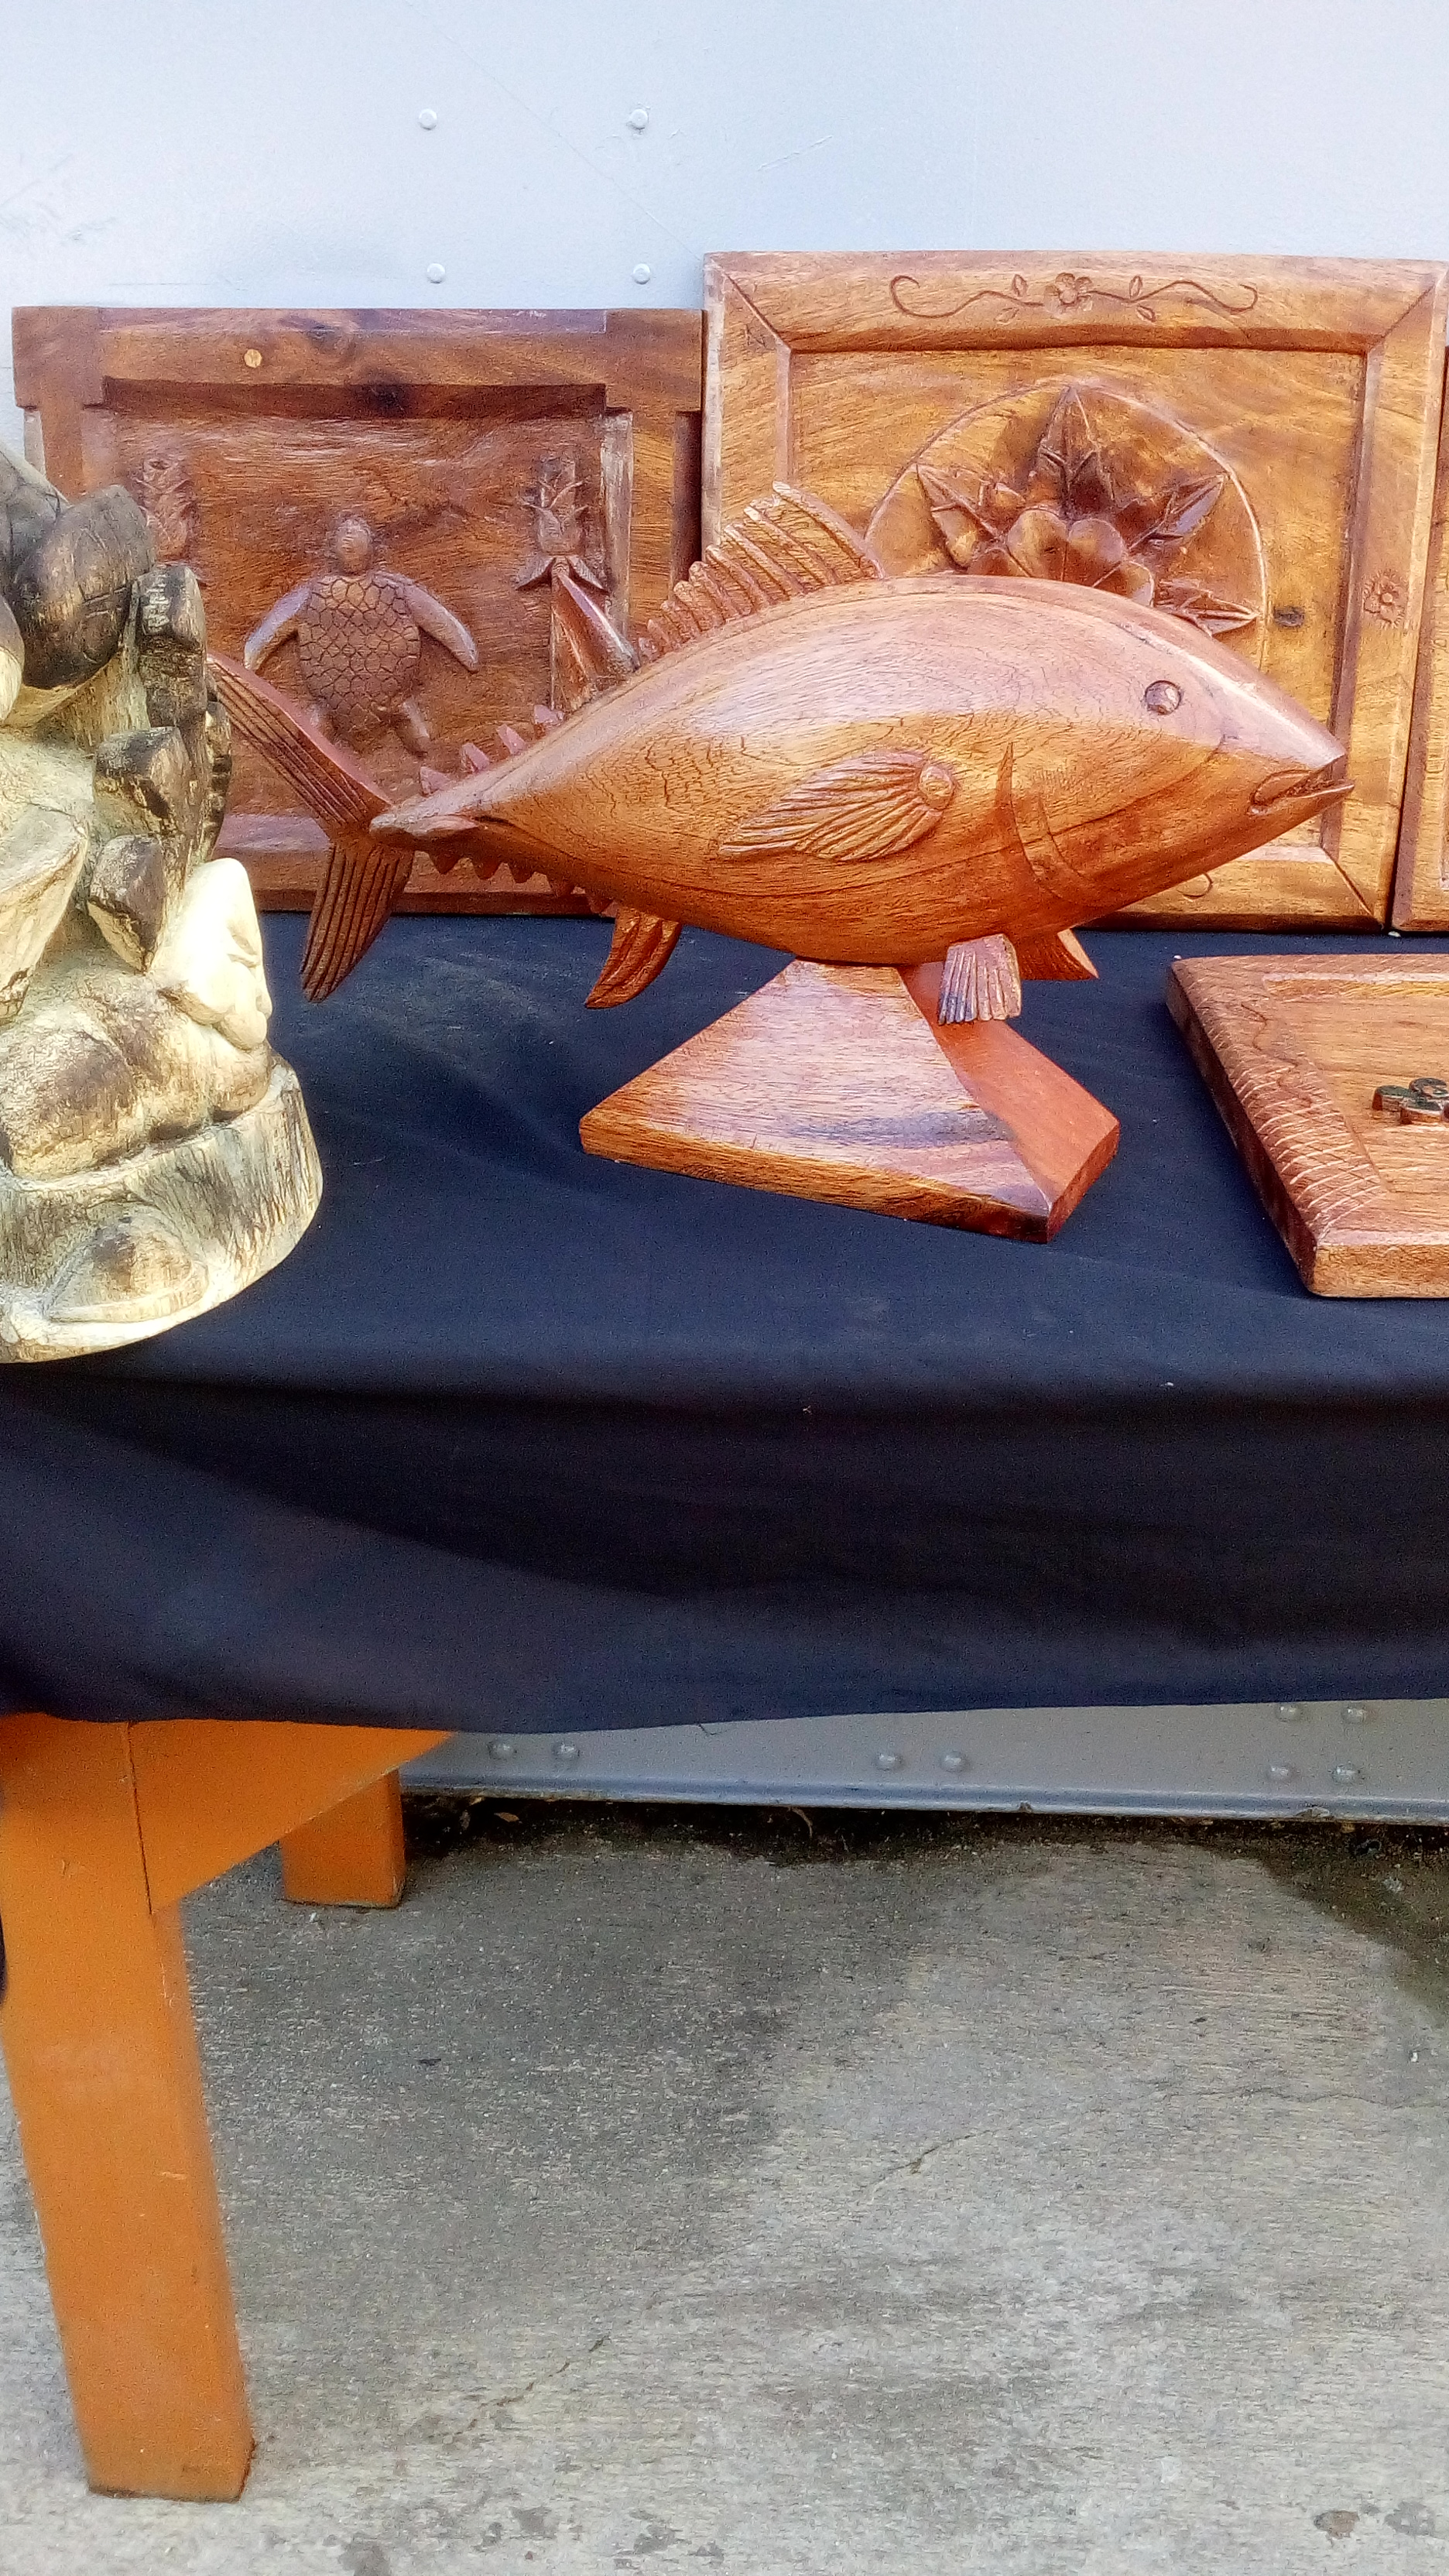 Fish carving created by Maston John. Photo: Suemina Bohanny